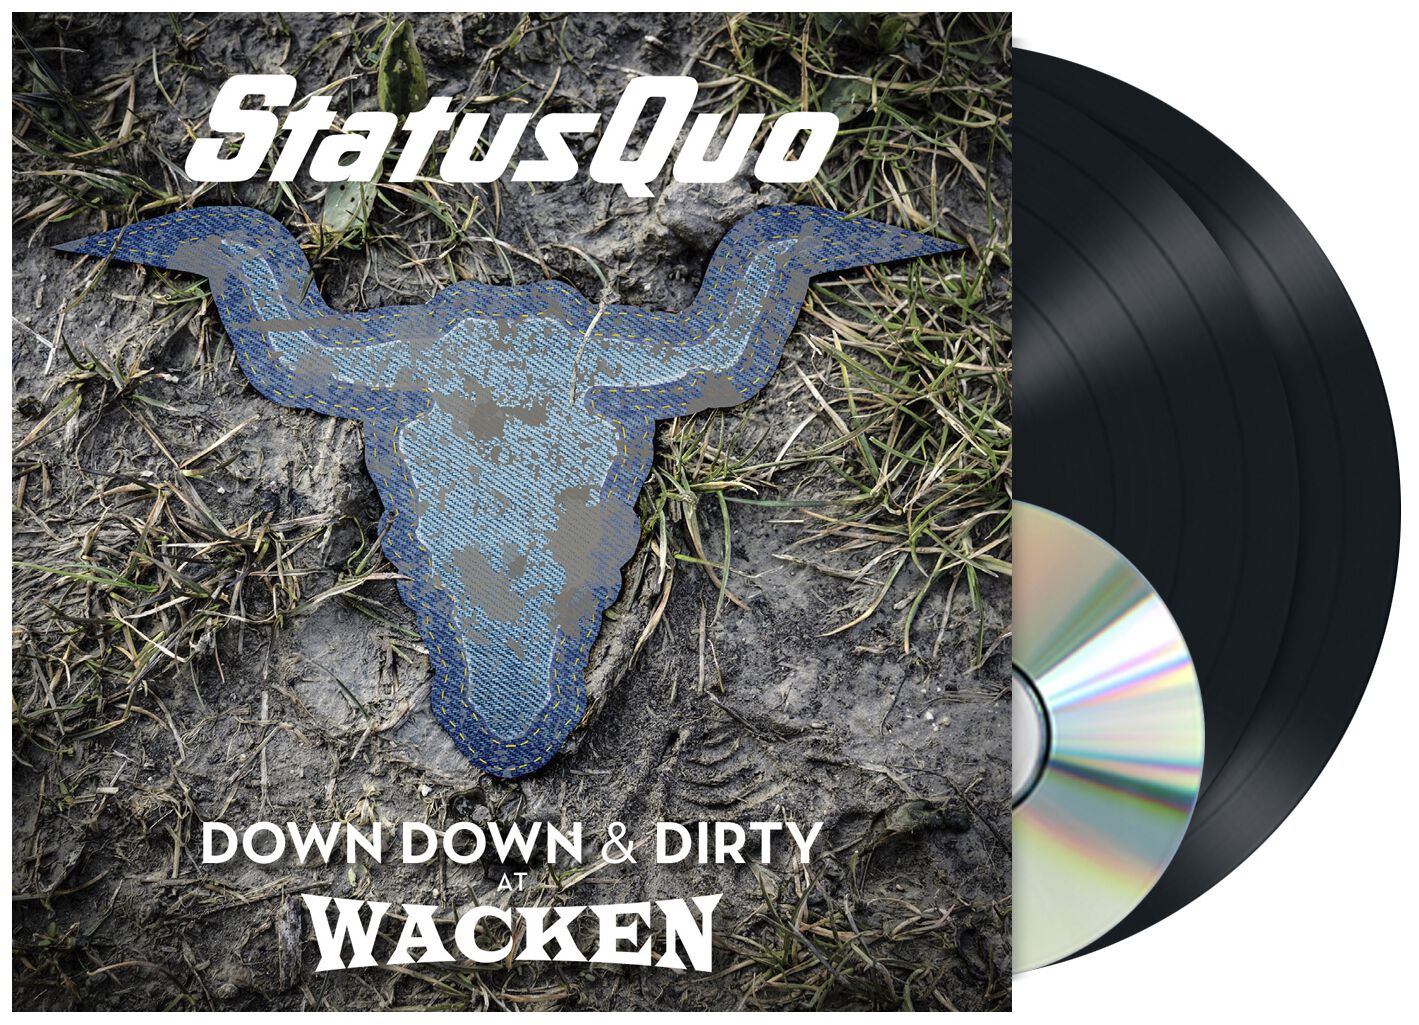 Status Quo Down down & Dirty at Wacken 2-LP & D...